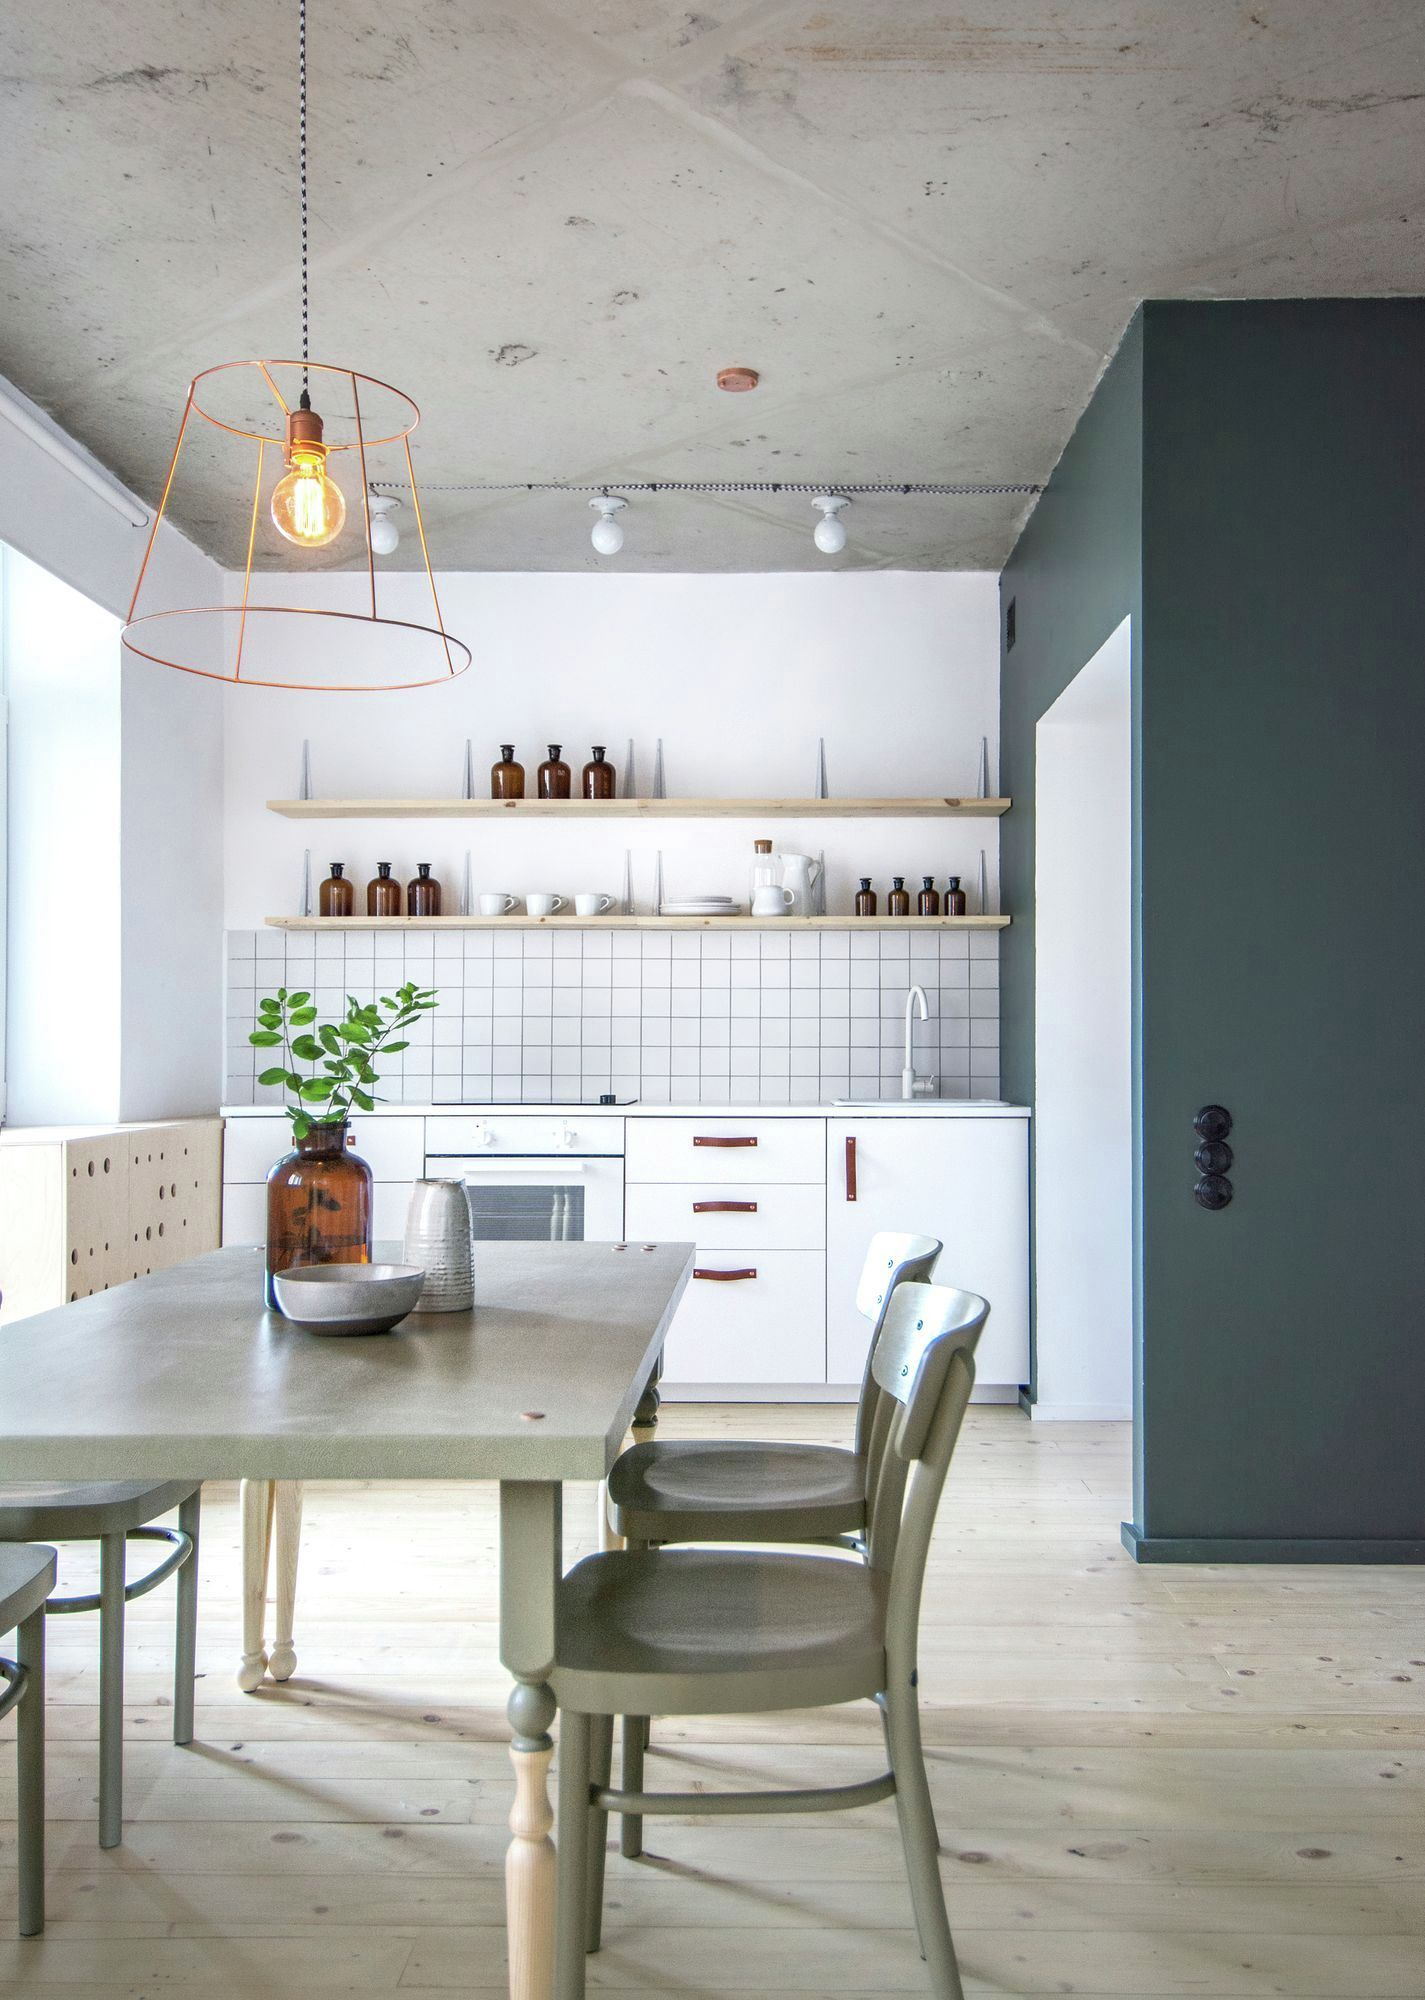 Eclectic apartment in St. Petersburg kitchen and dining